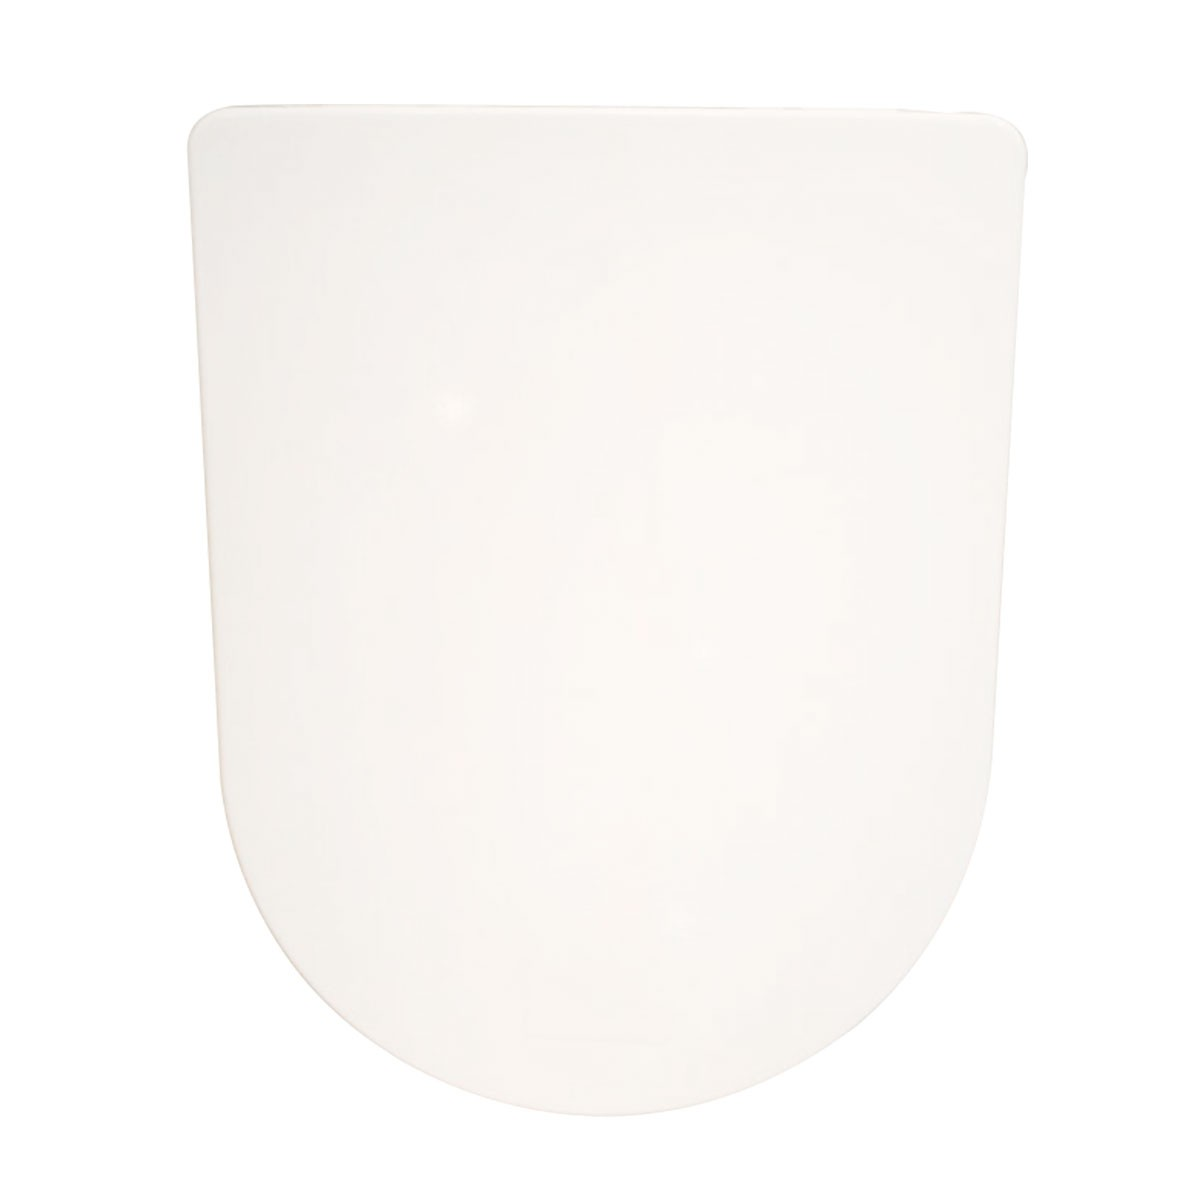 White Soft Close Toilet Seat with Cover (DK-CL-110)